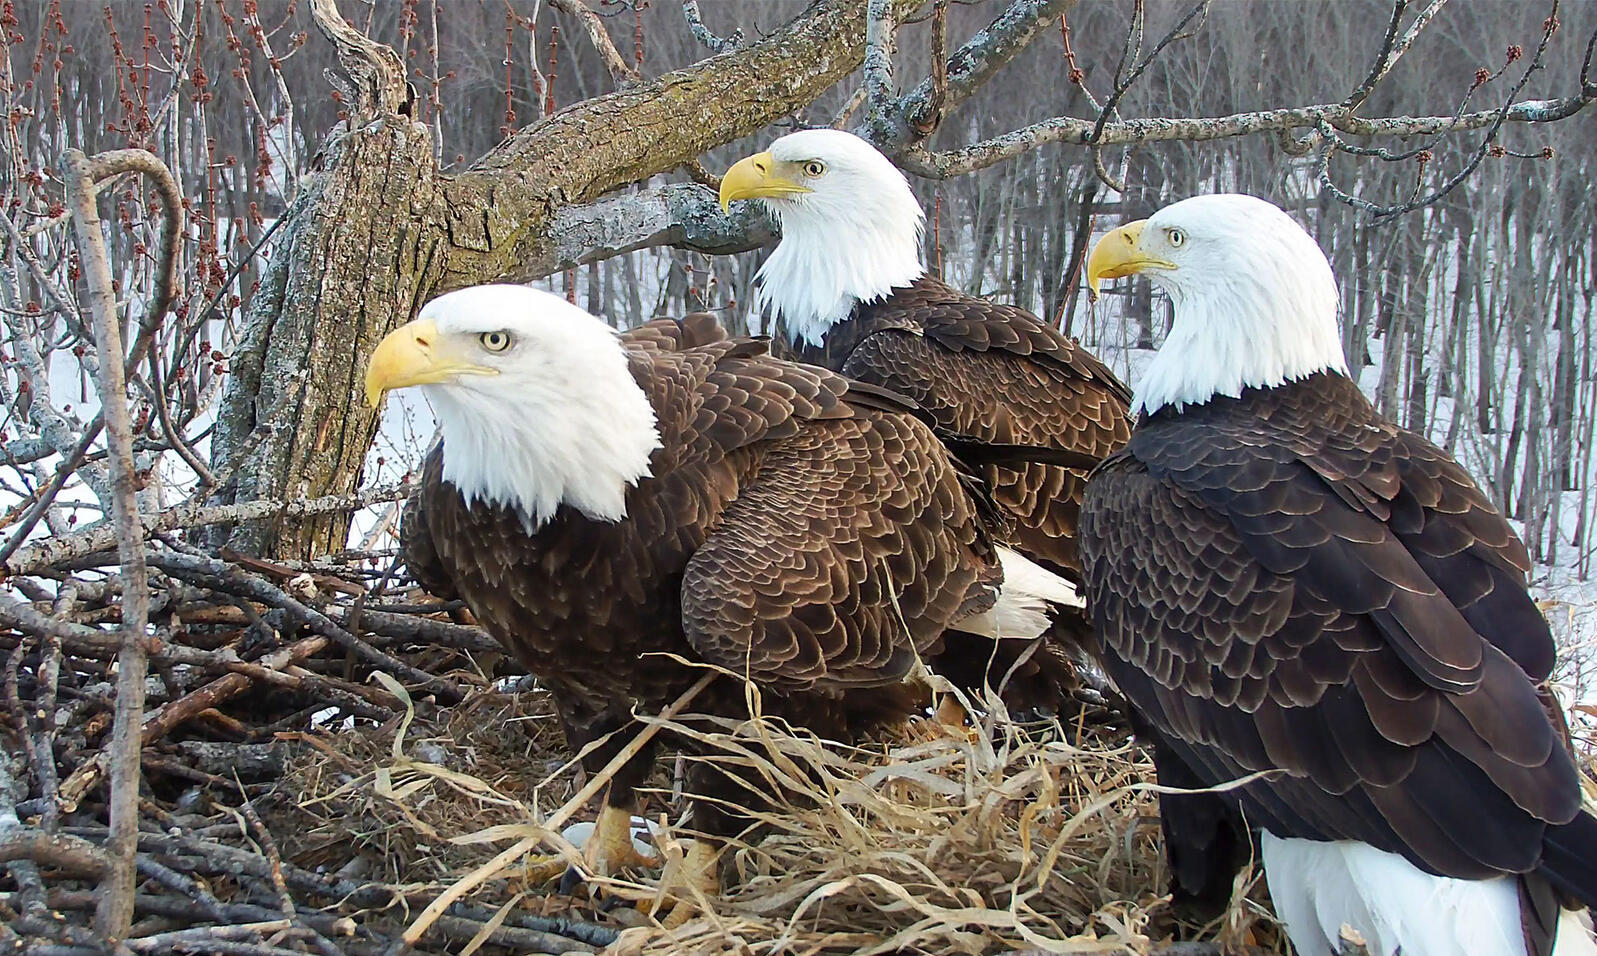 Starr, Valor II, and Valor I (left to right) sit on their nest in Illinois. Their chicks are lucky to have so much parental care! Stewards of the Upper Mississippi River Refuge